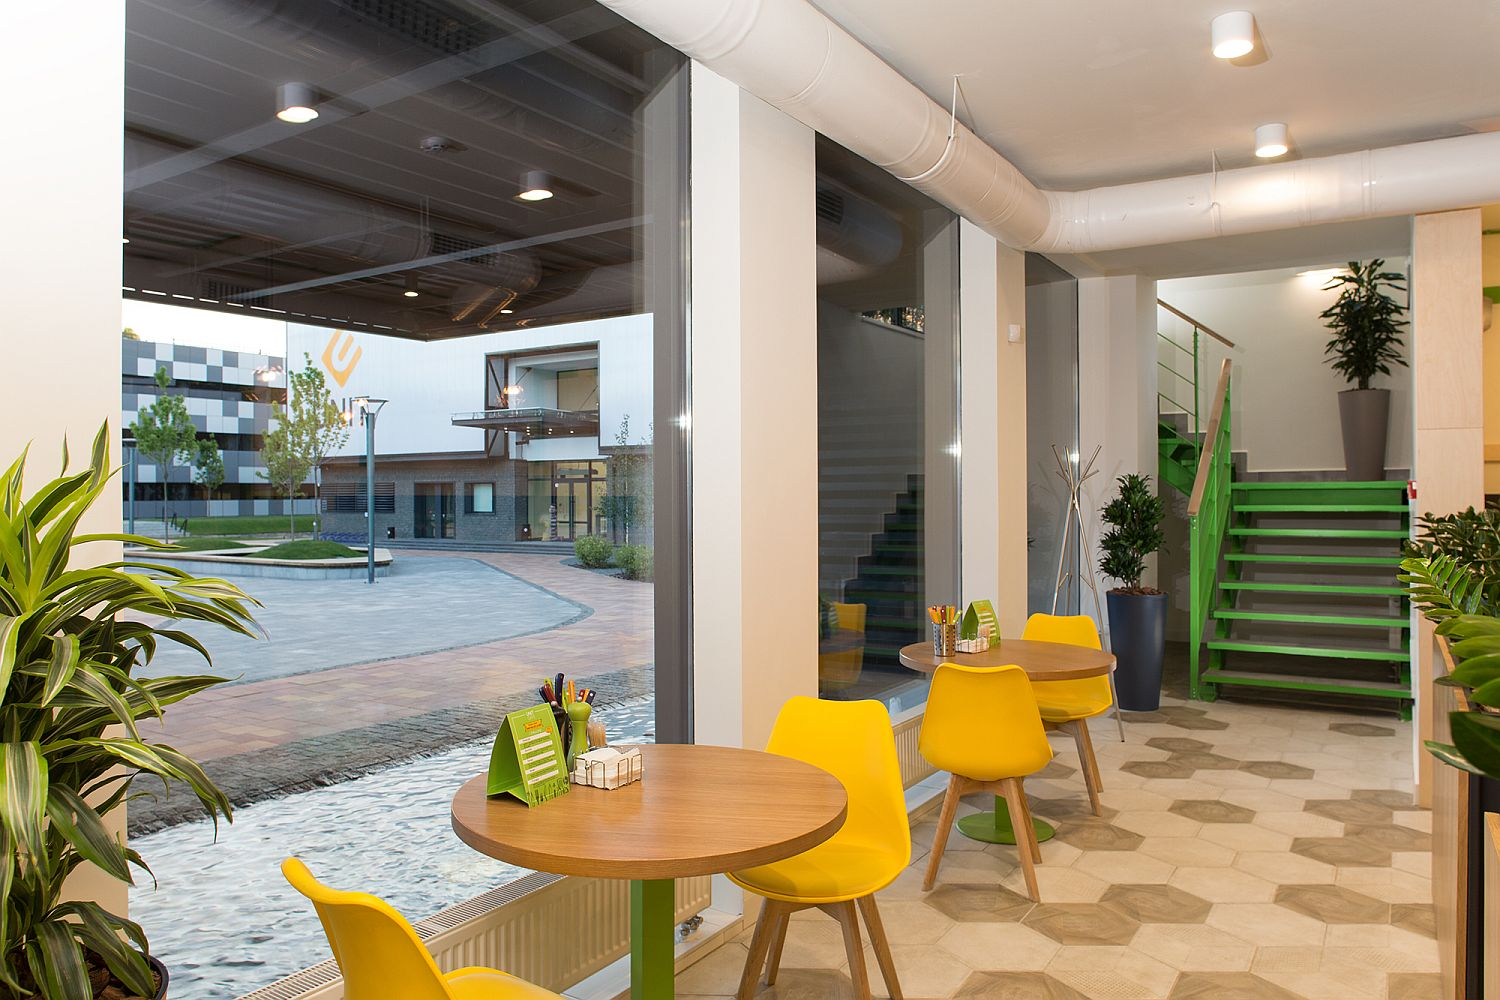 Modern industrial elements along with bright color shape the cafe interior